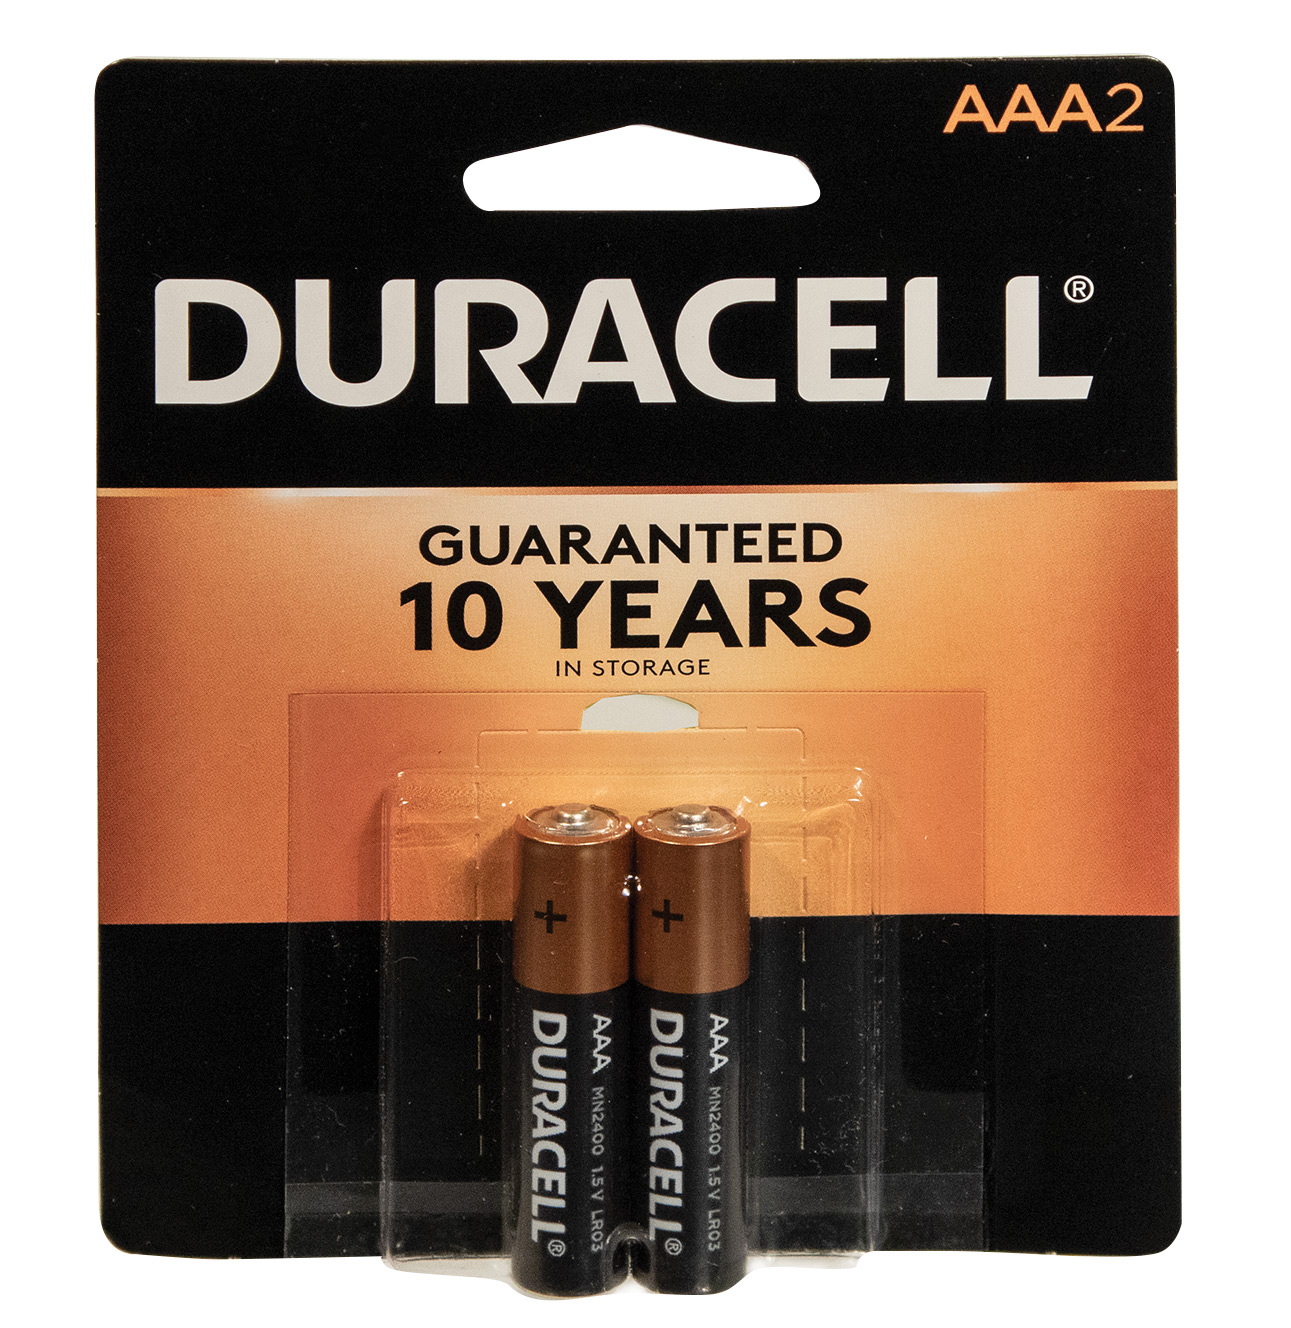 Duracell 2 AAA Batteries